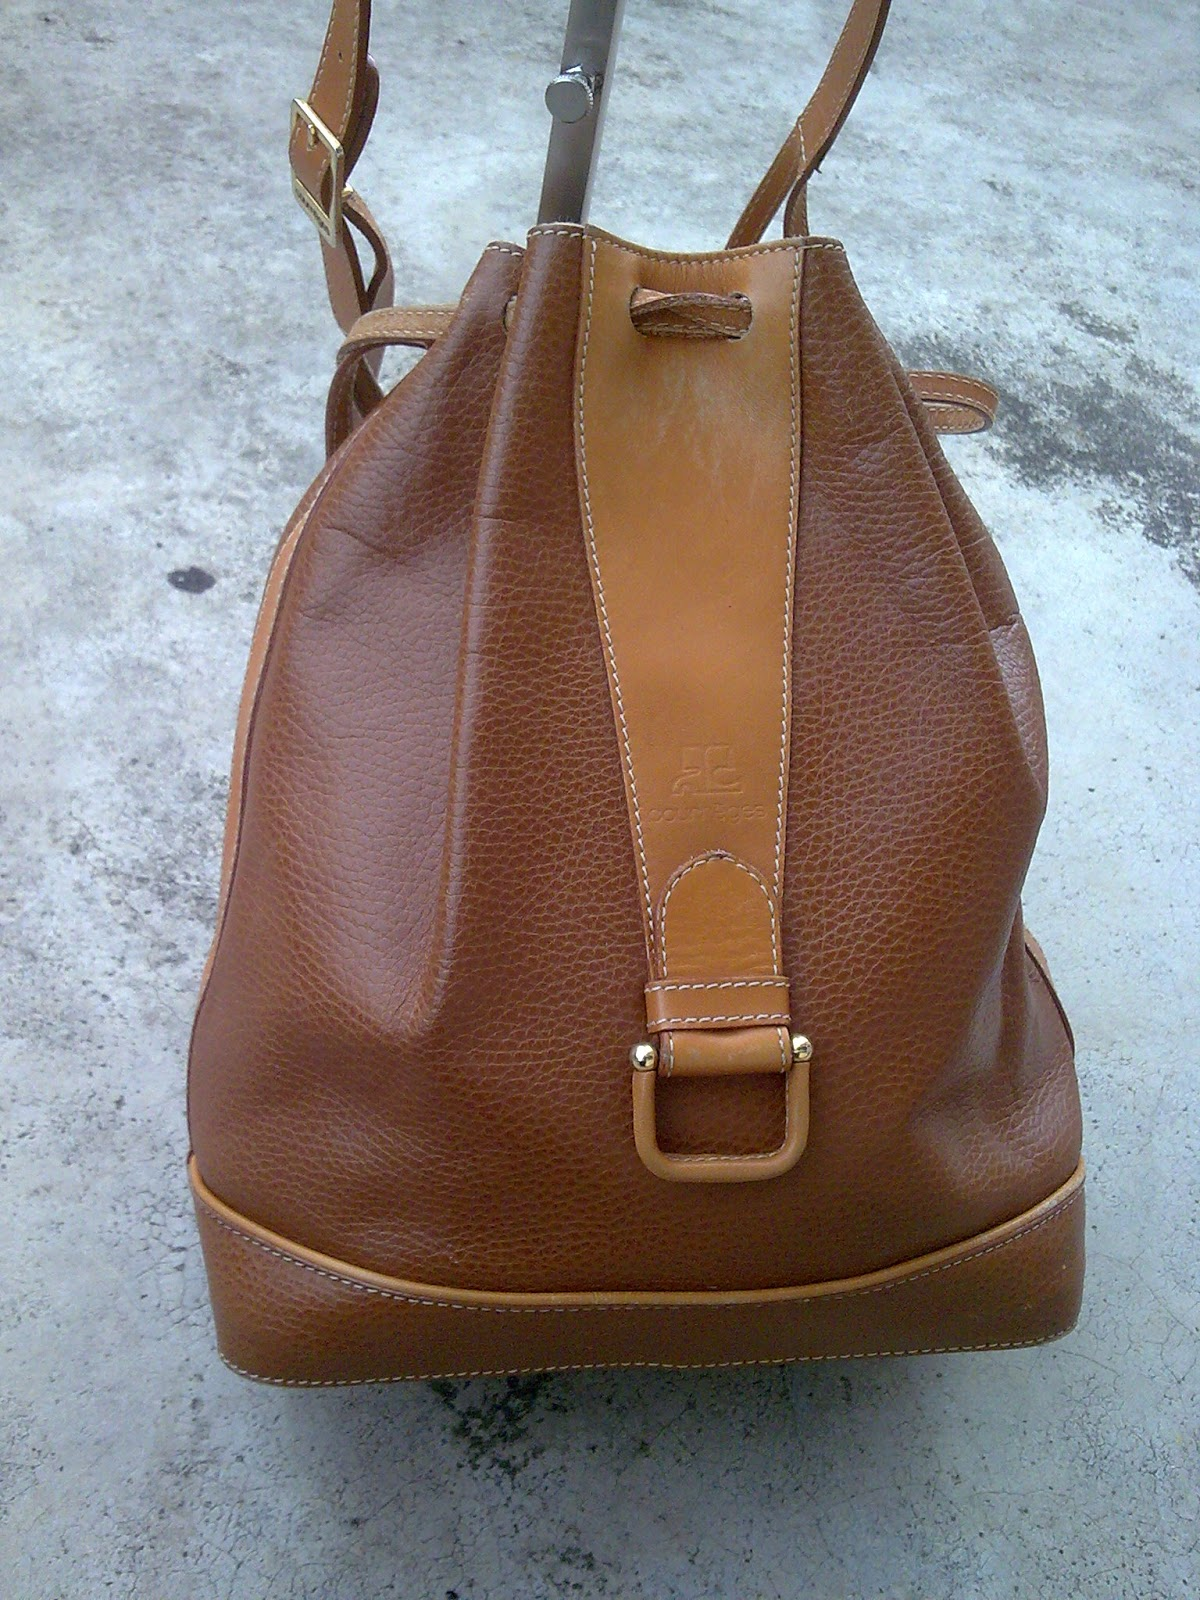 D0rayakeebag Courreges Leather Bucket Bag Sold